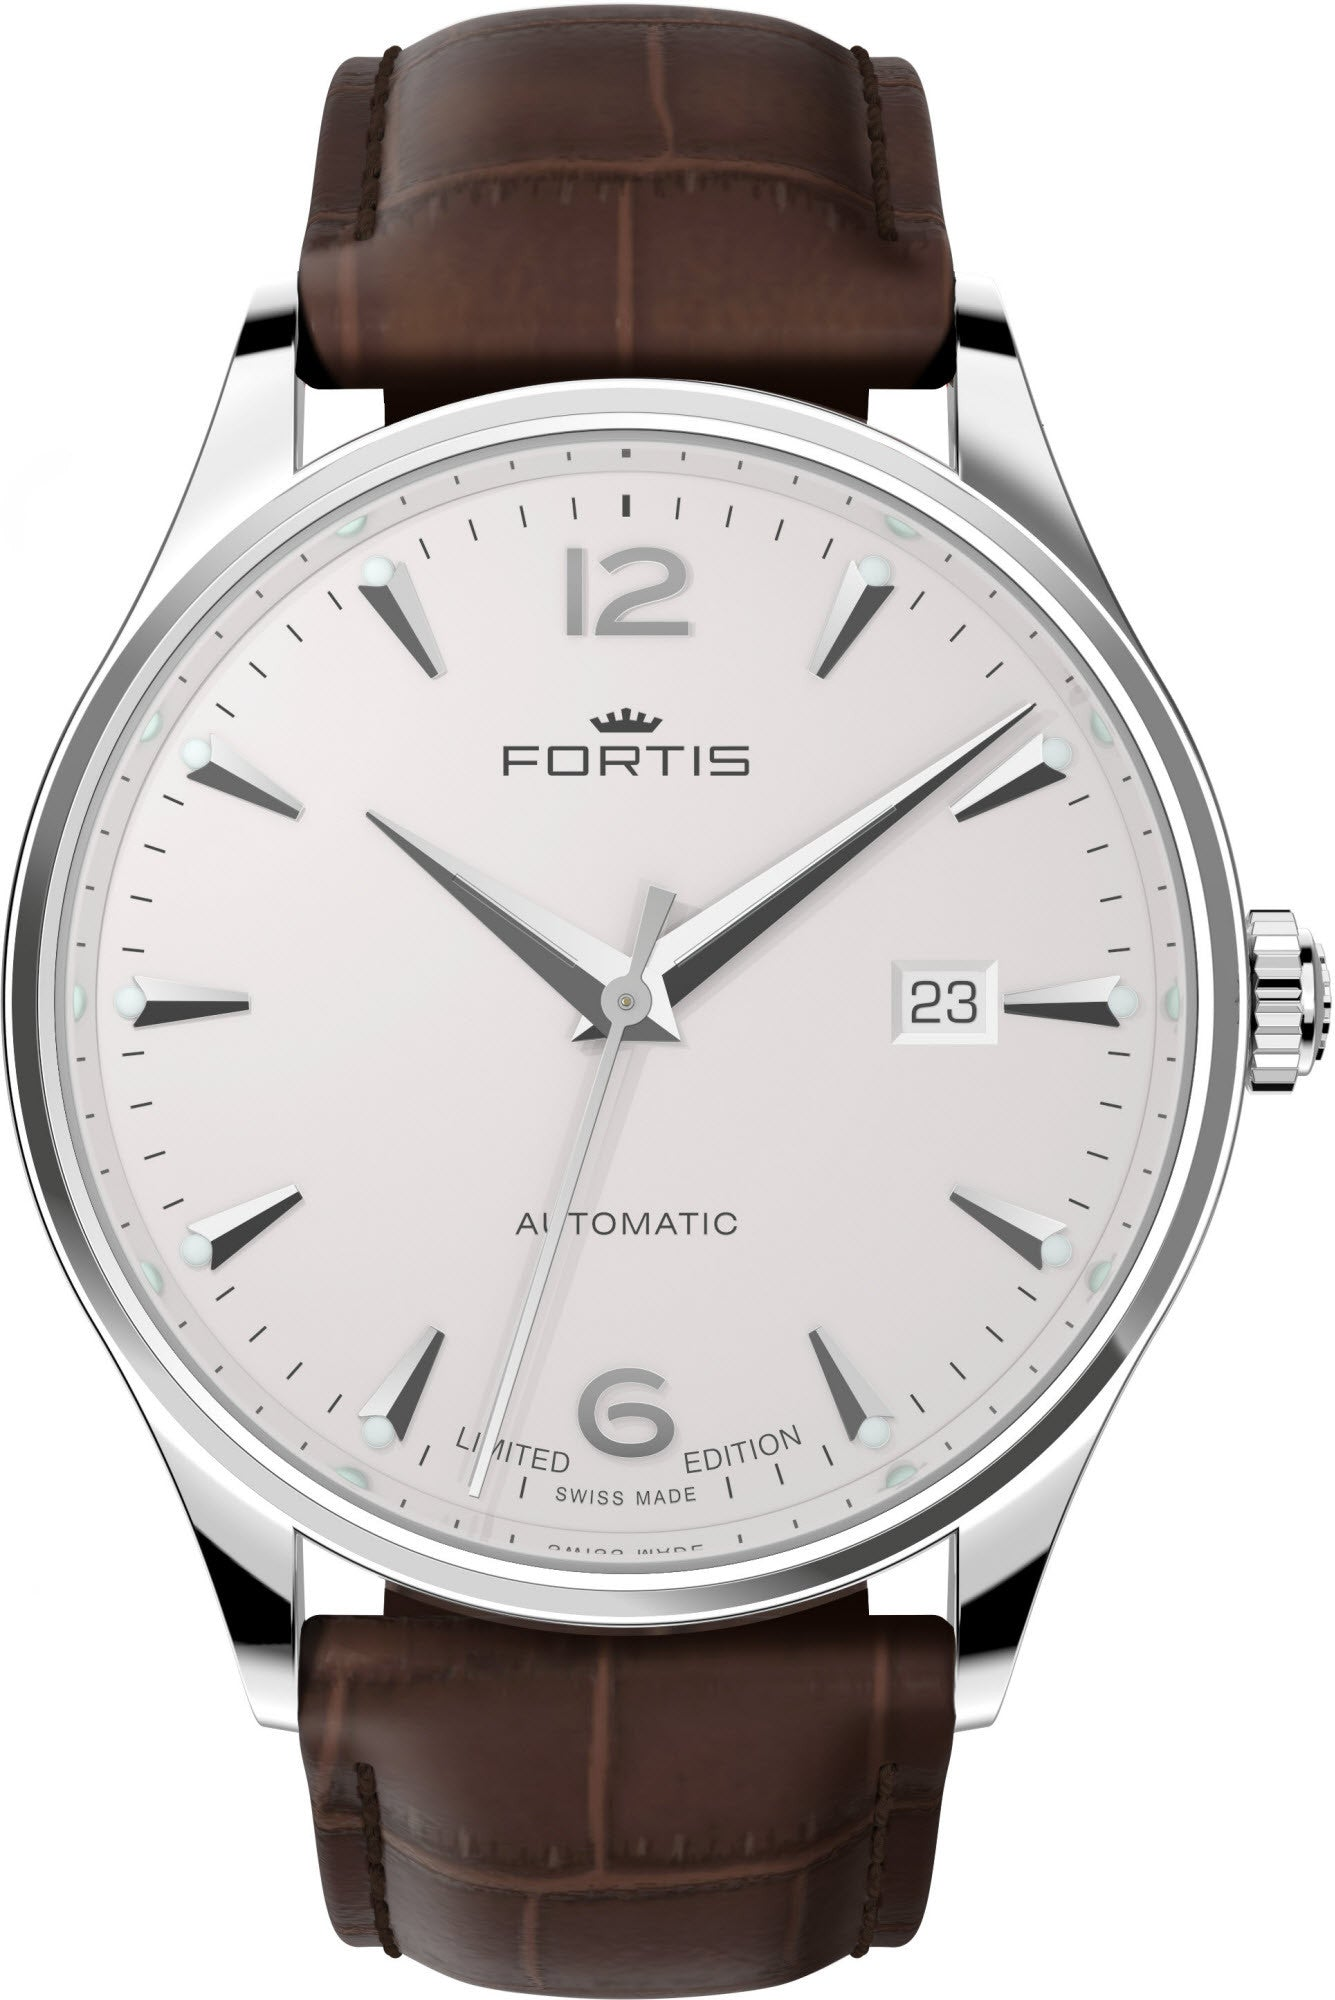 Fortis Watch Terrestis Founder Limited Edition